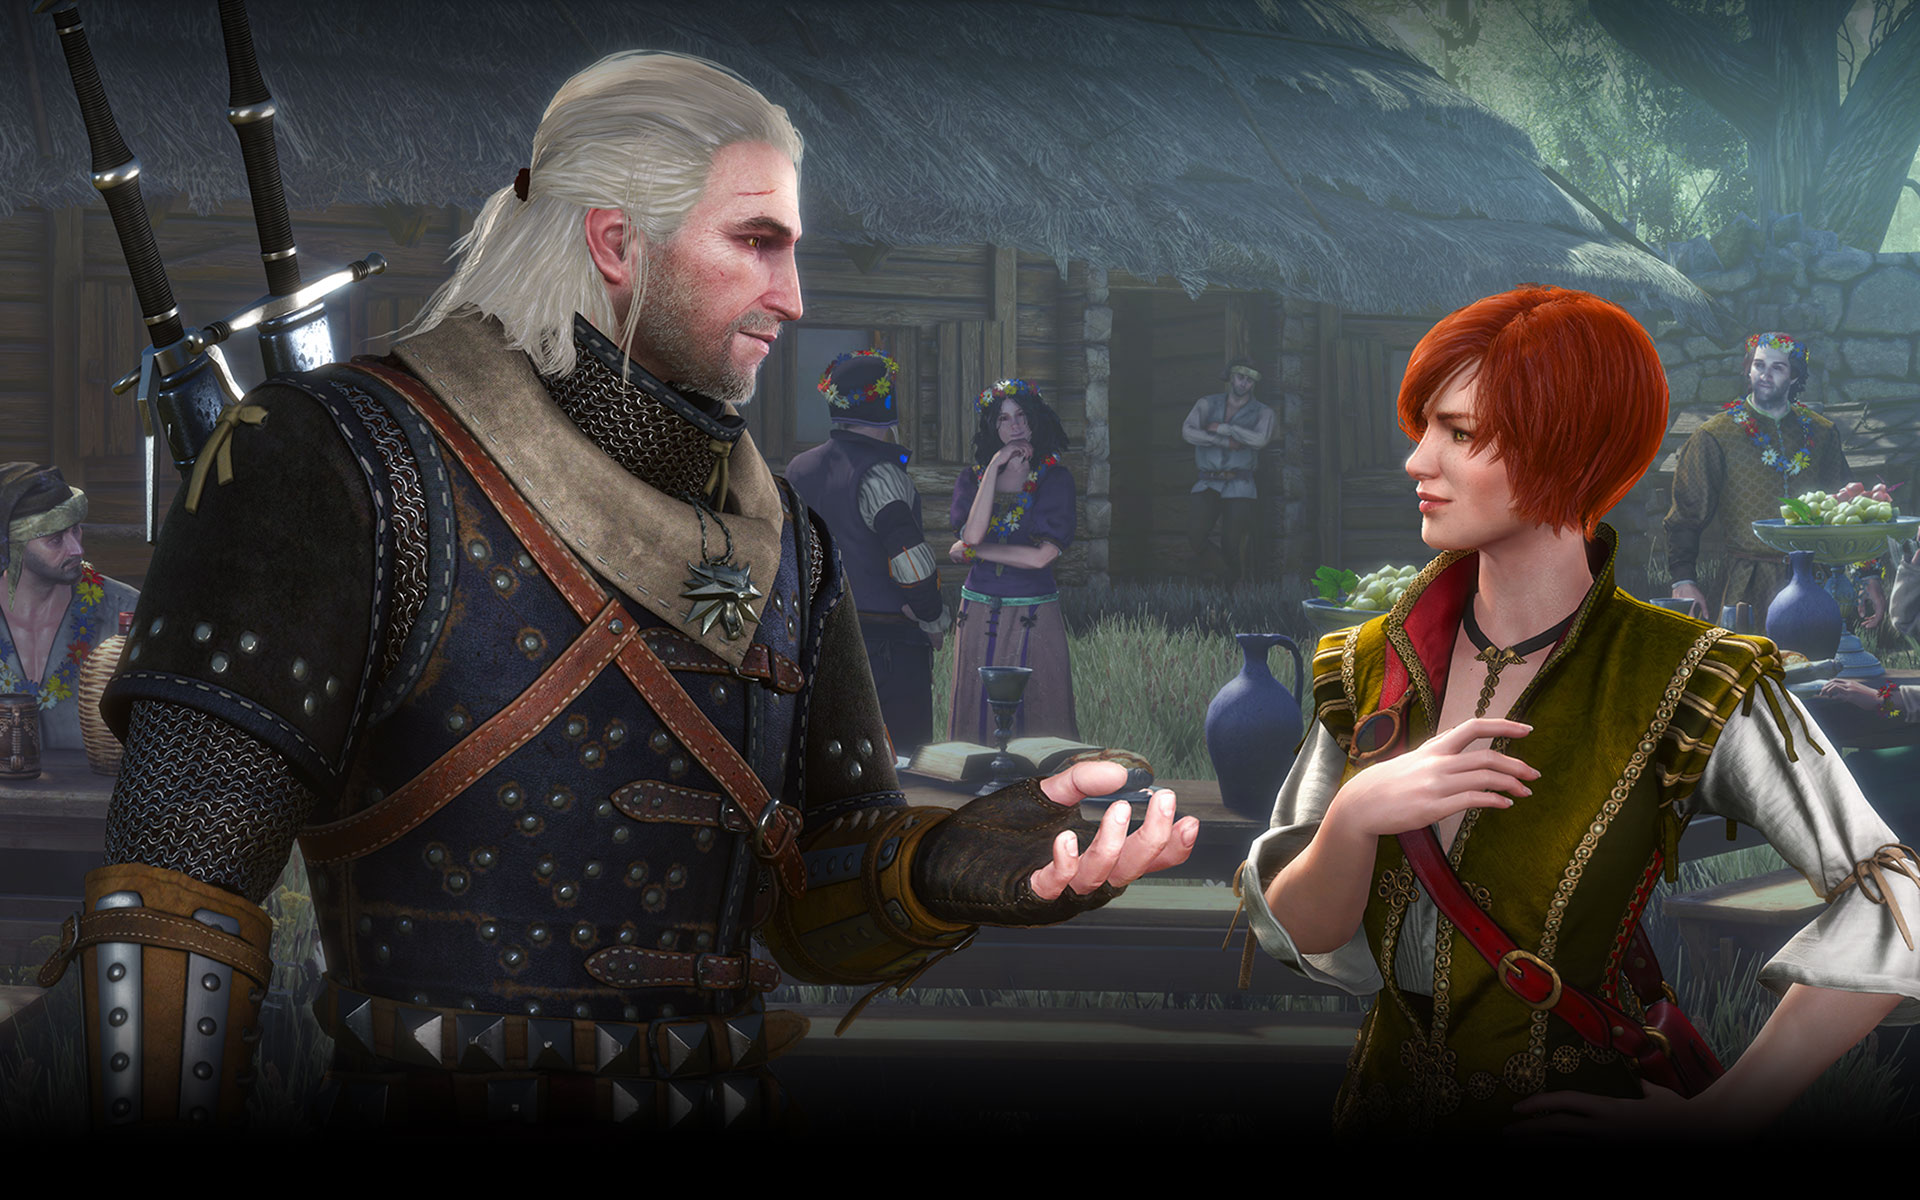 Photo of Reduceri mari pe GOG – The Witcher 3 la jumatate de pret